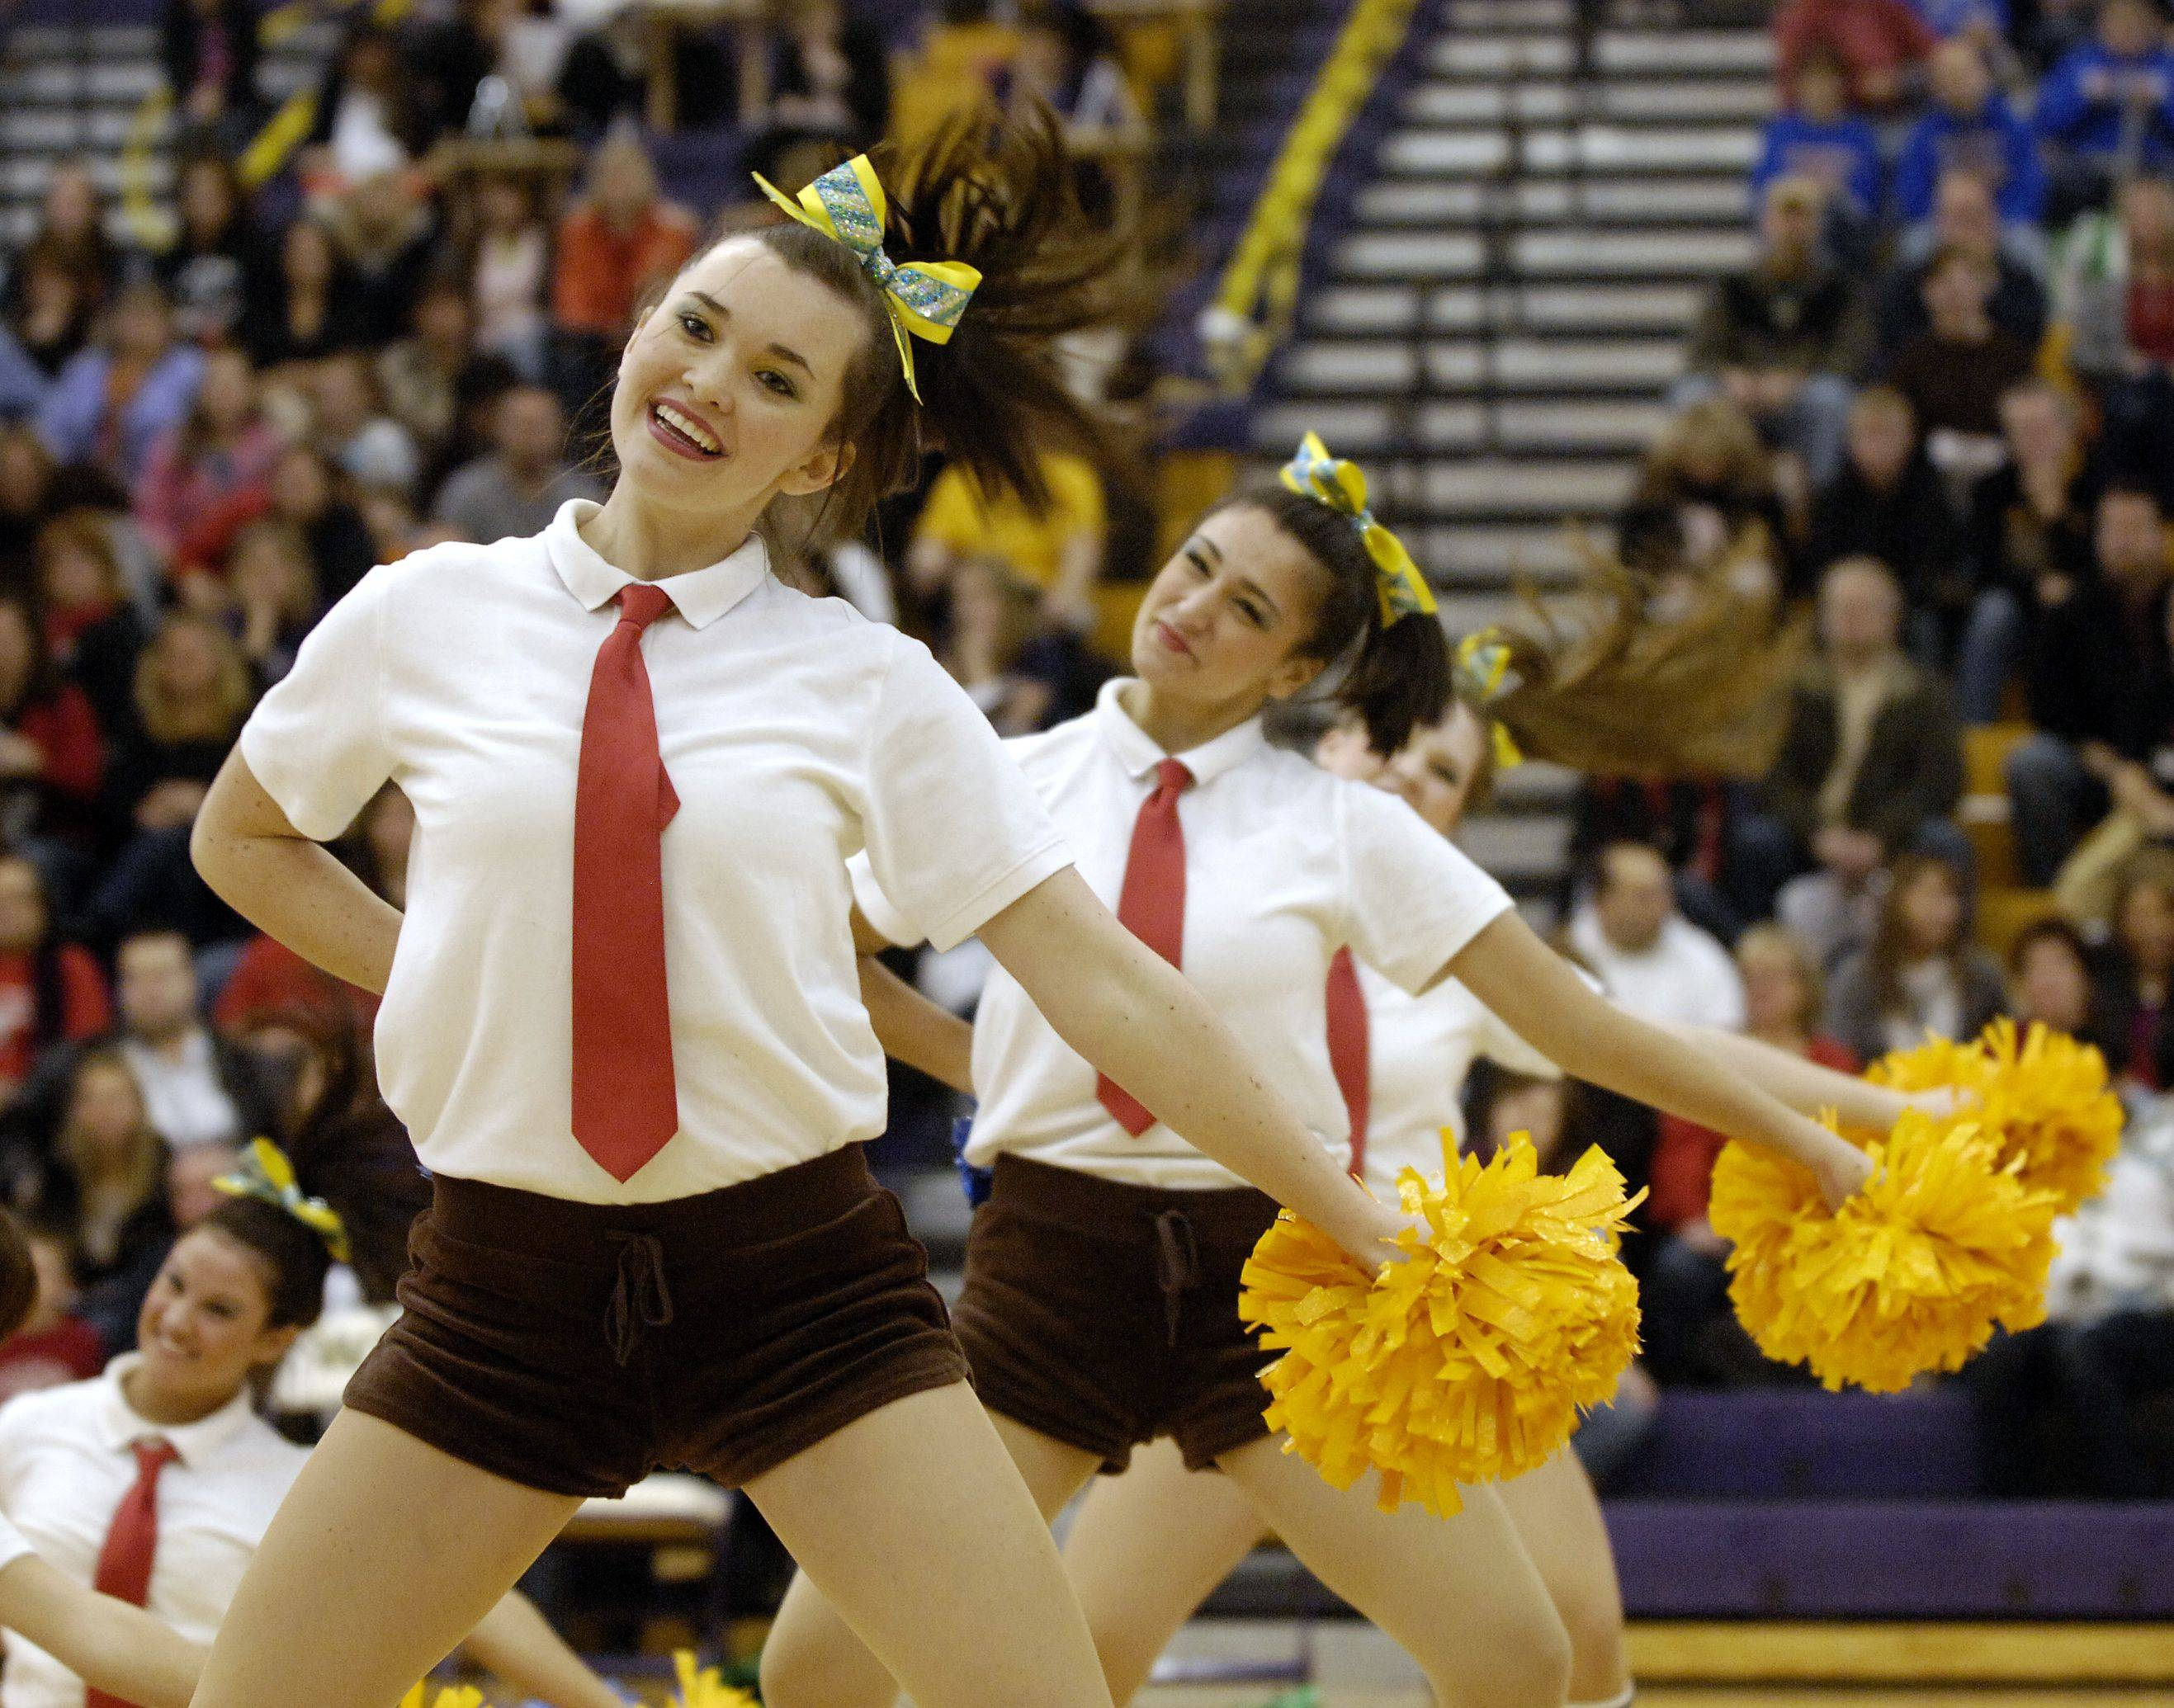 Conant High School performs in the JV Poms division during the Team Dance Illinois Wauconda Invitational competition at Wauconda High School.